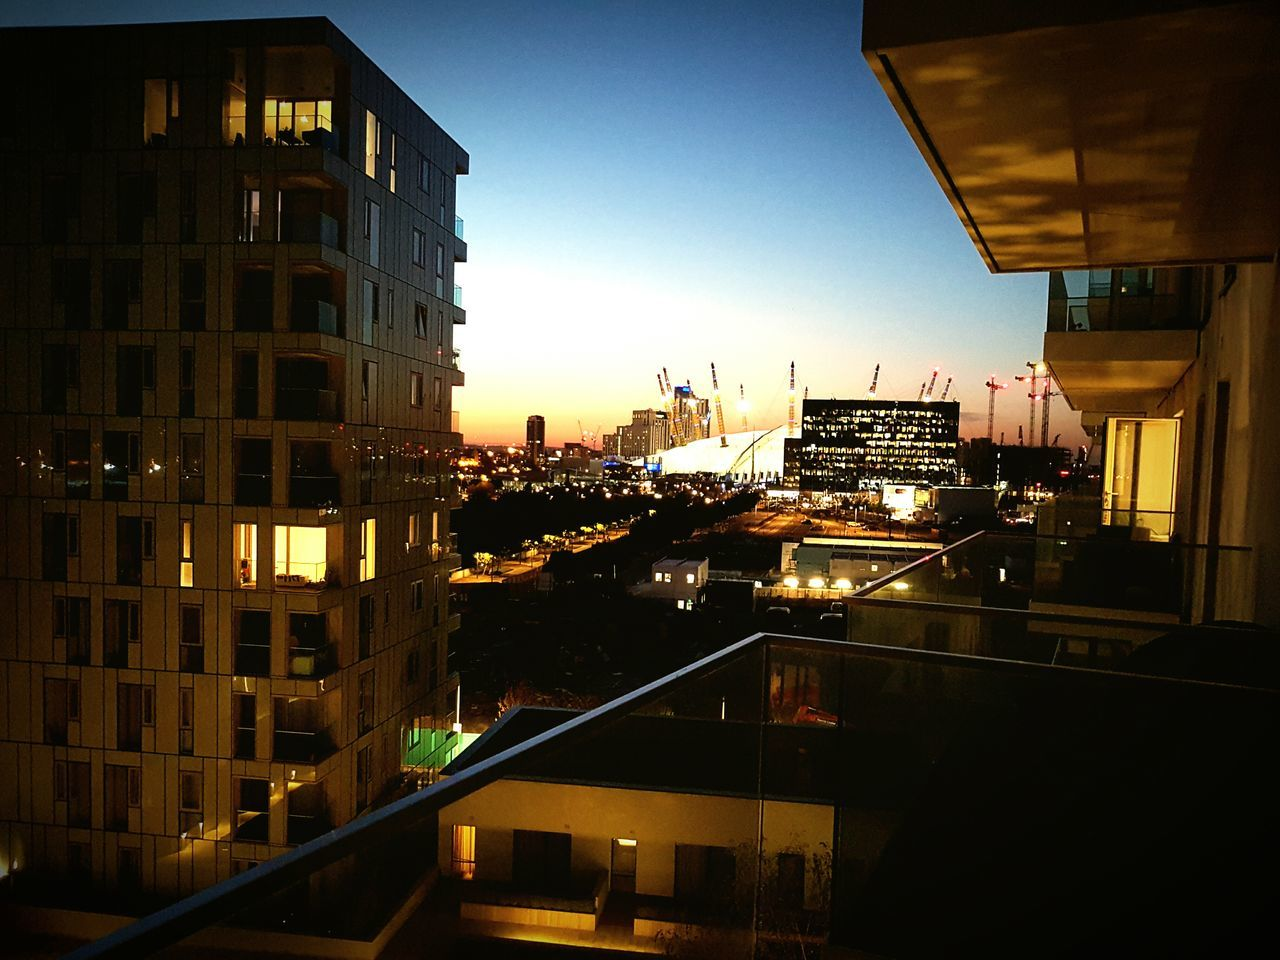 My Favorite Place Illuminated Architecture Building Exterior Built Structure City Night Residential Building City Life Cityscape Sky Outdoors Residential District Development Office Building Urban Skyline Tall - High No People Building Story Tail Light EyeEm Best Shots Eyeemphotography O2 Arena North Greenwich London